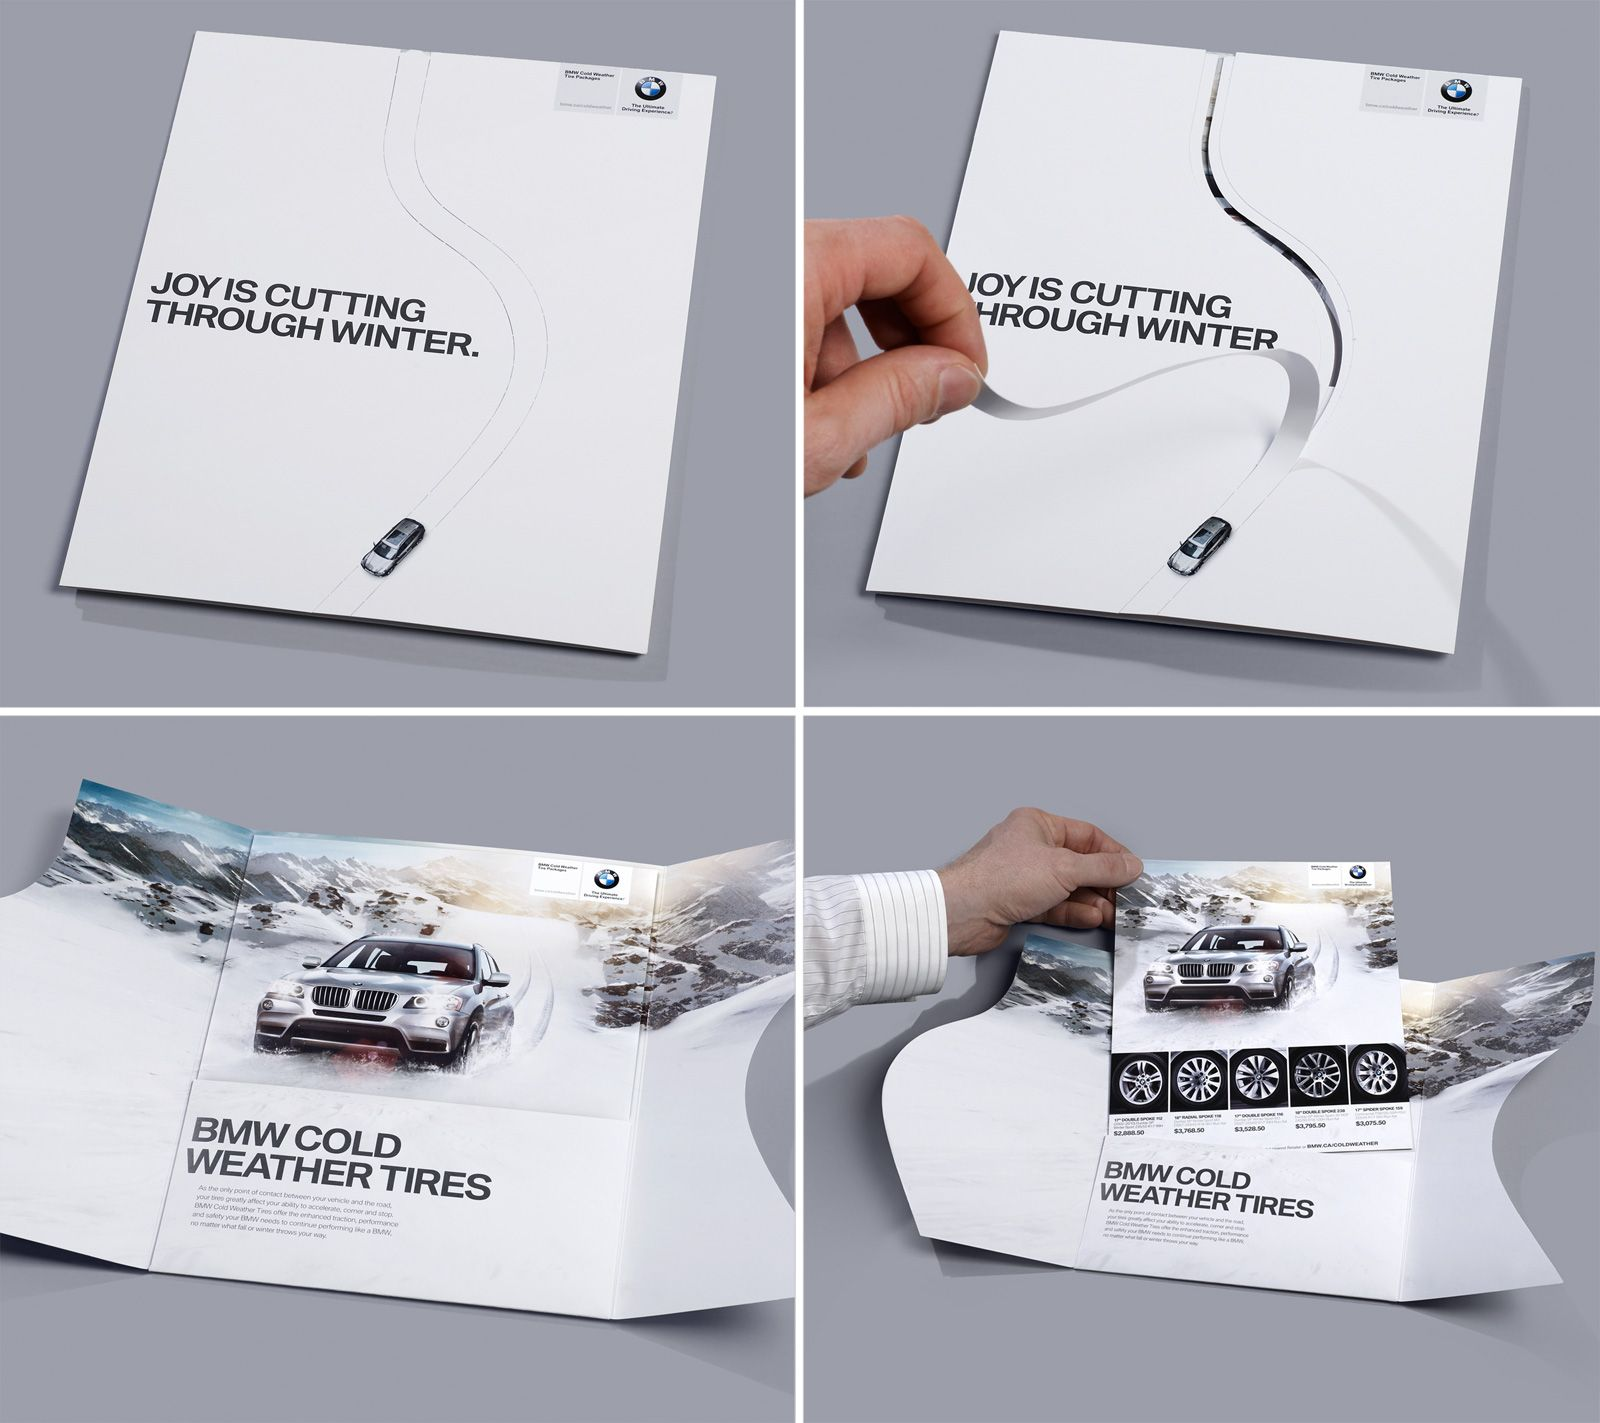 A clever die cut direct mail piece that is sure to grab